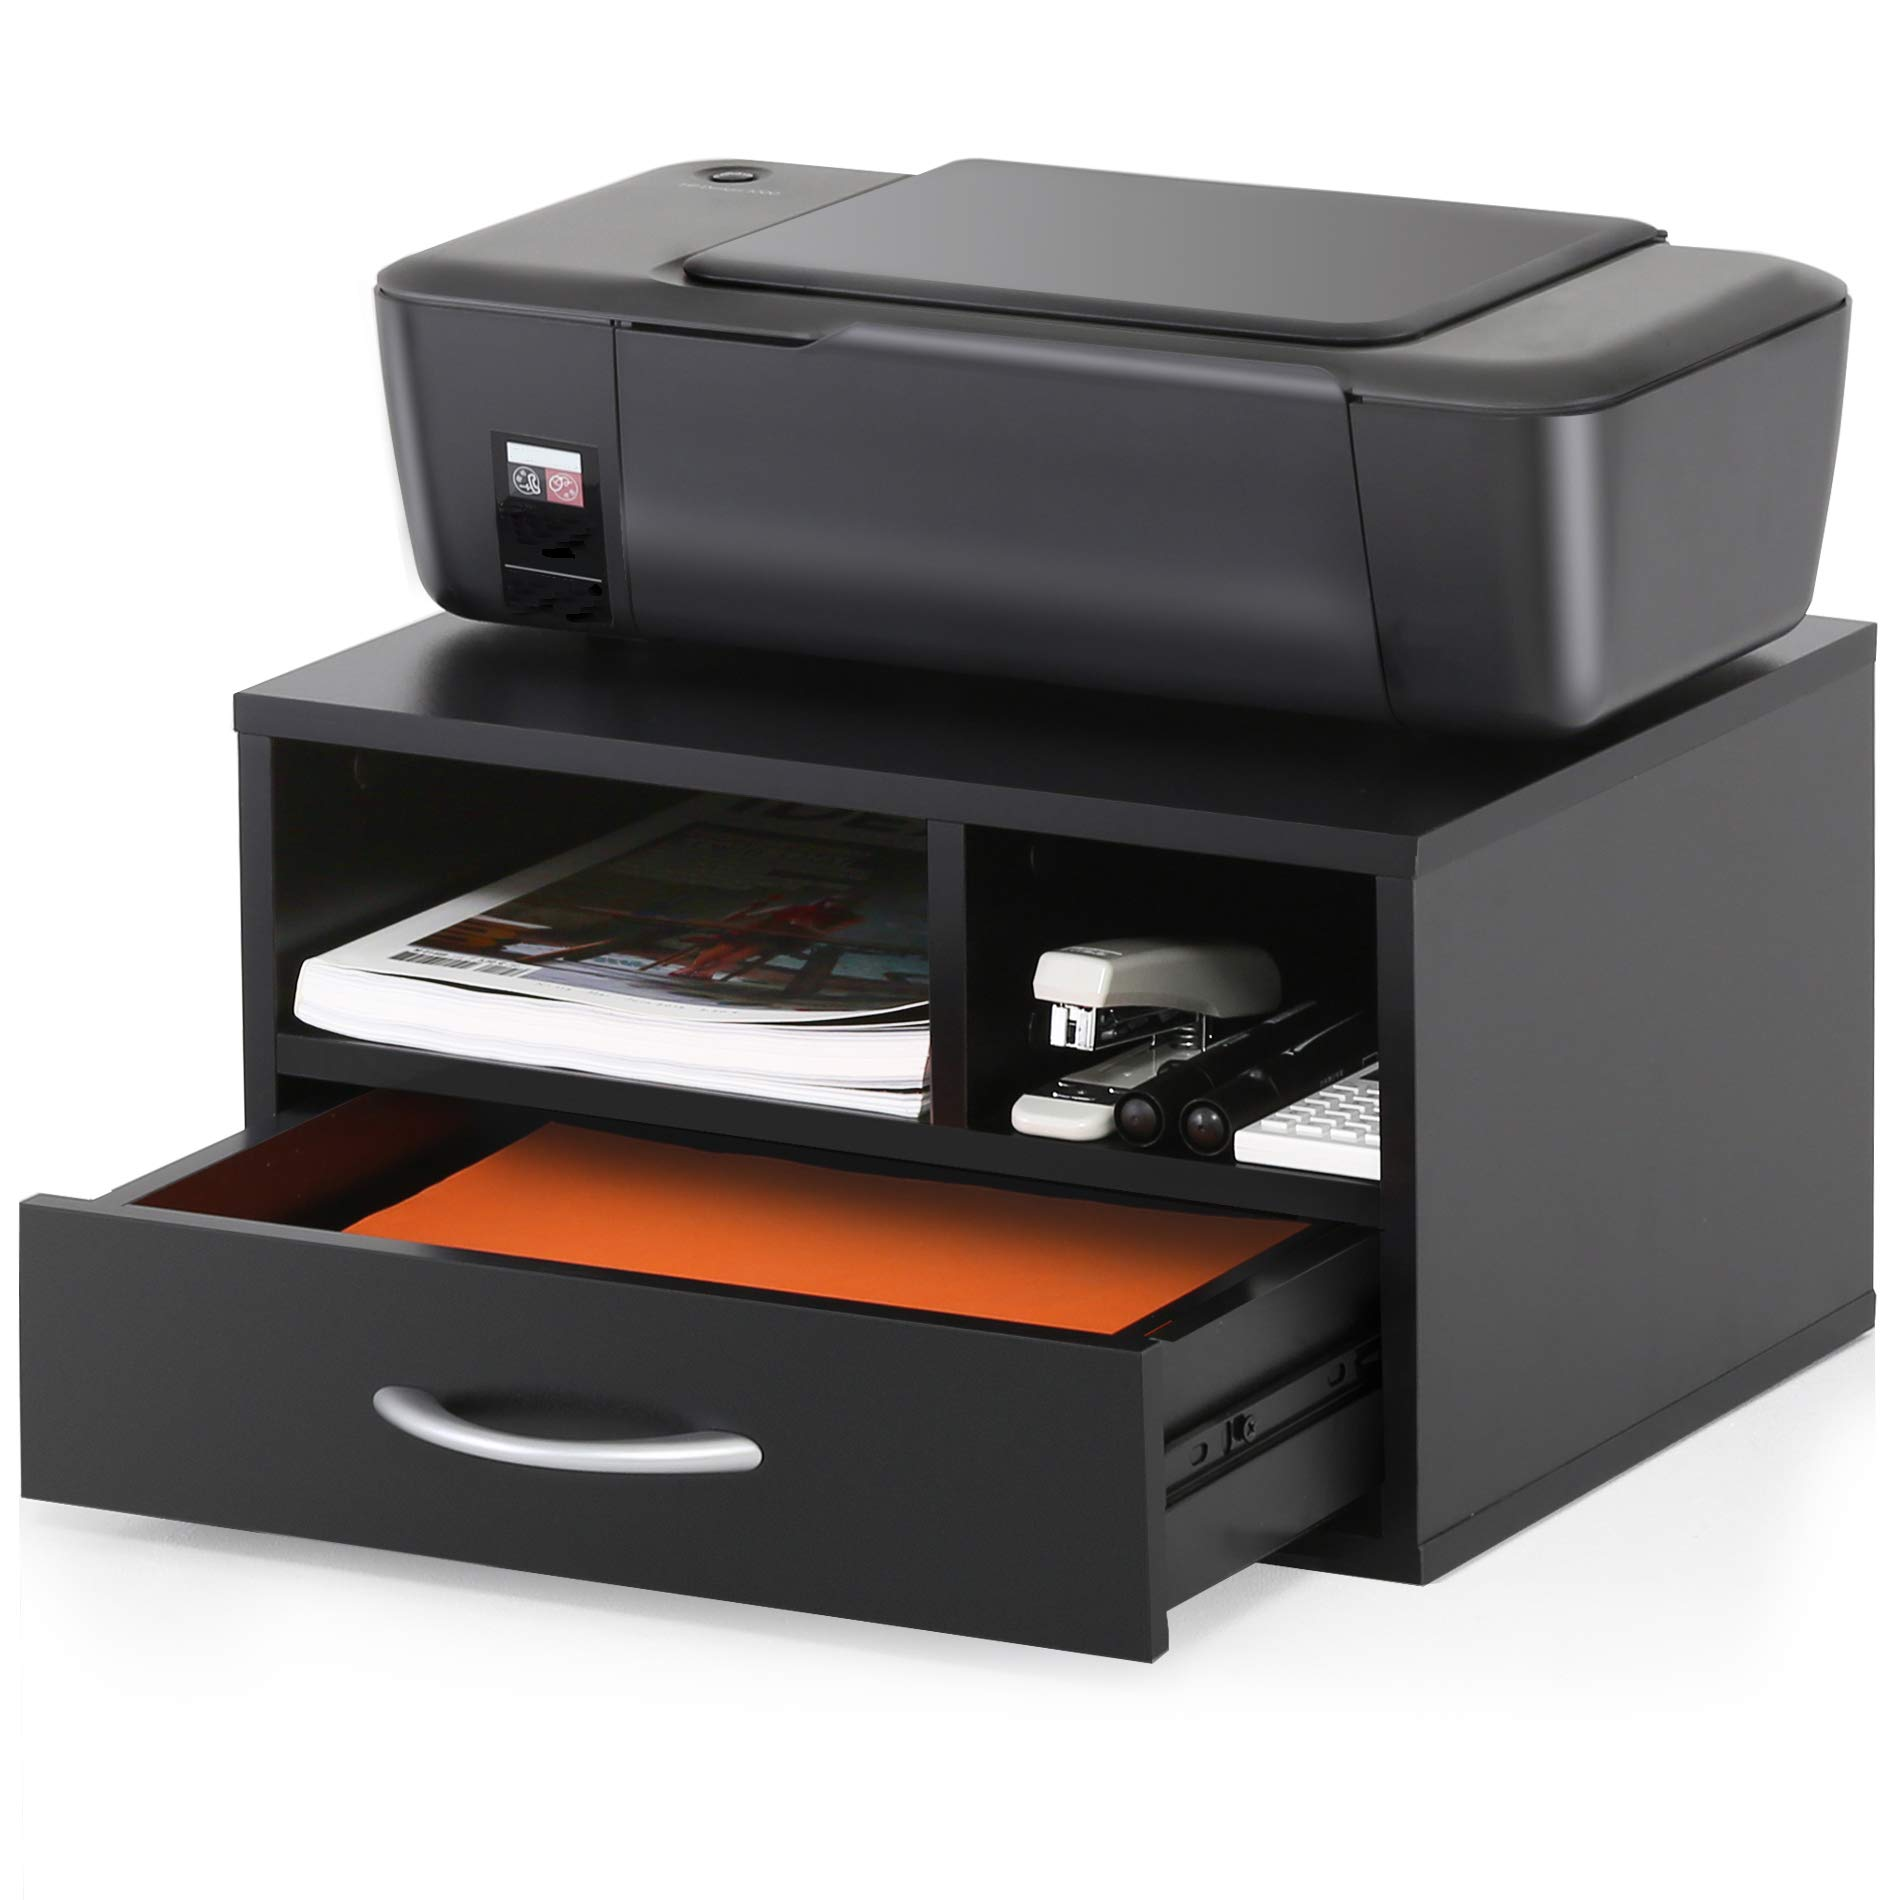 Fitueyes Wood Printer Stands with Drawer,Workspace Desk Organizers for Home & Office,Black,DO304002WB by FITUEYES